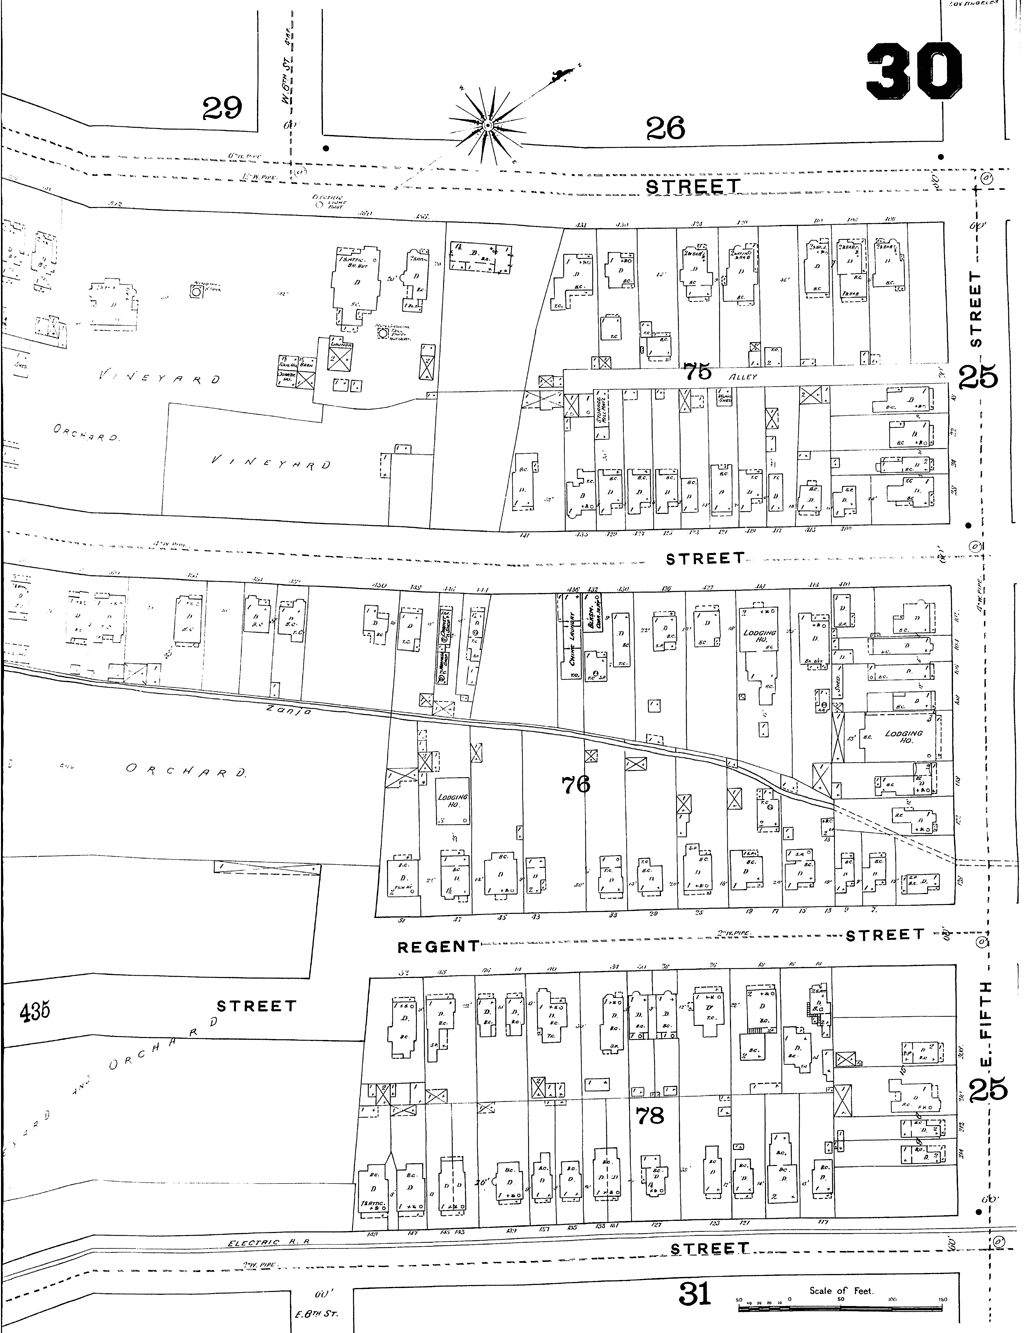 Location of 45 Regent Street. Detail of Sanborn (1888), Plate 30. Courtesy of the Los Angeles Public Library.